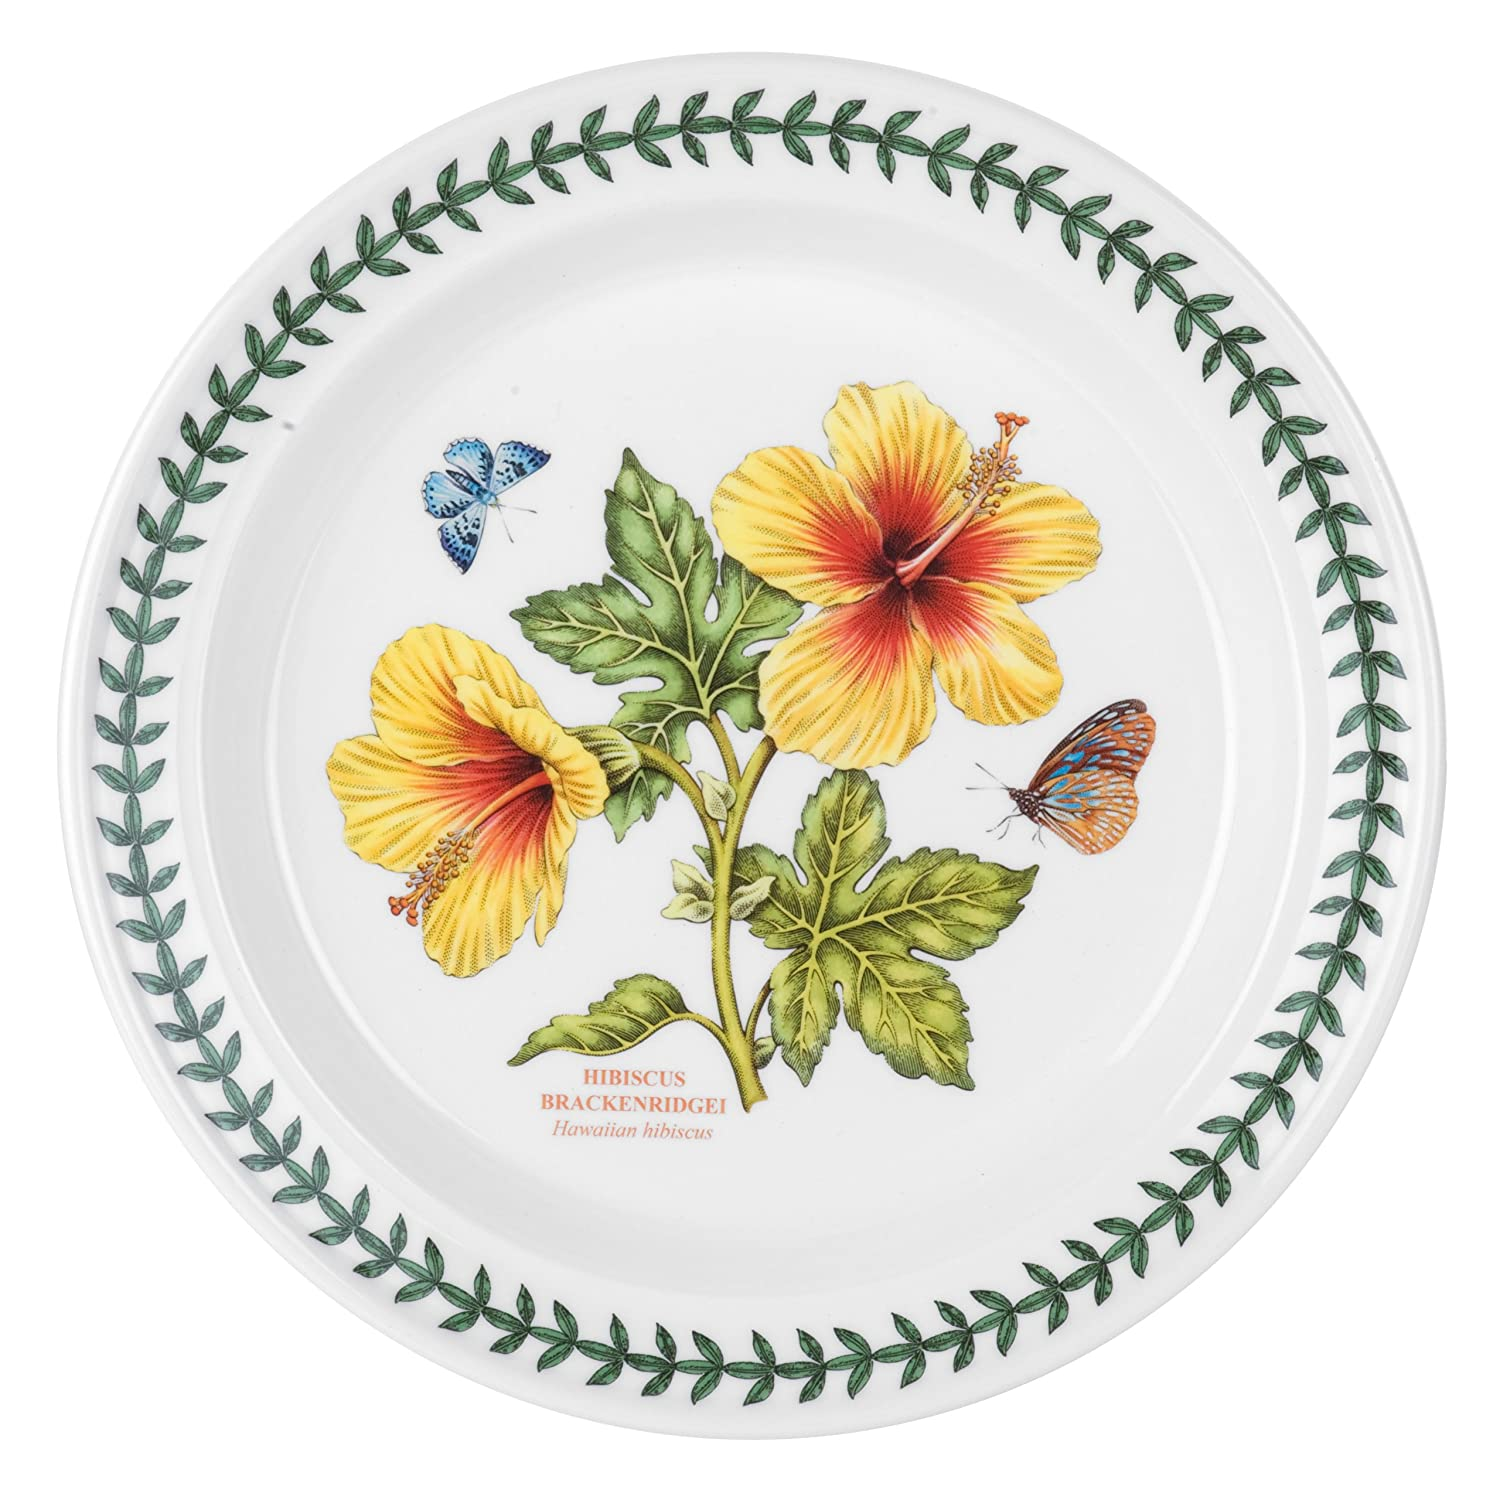 Captivating Amazon.com | Portmeirion Exotic Botanic Garden Dinner Plate With Hibiscus  Motif, Set Of 6: Dinner Plates